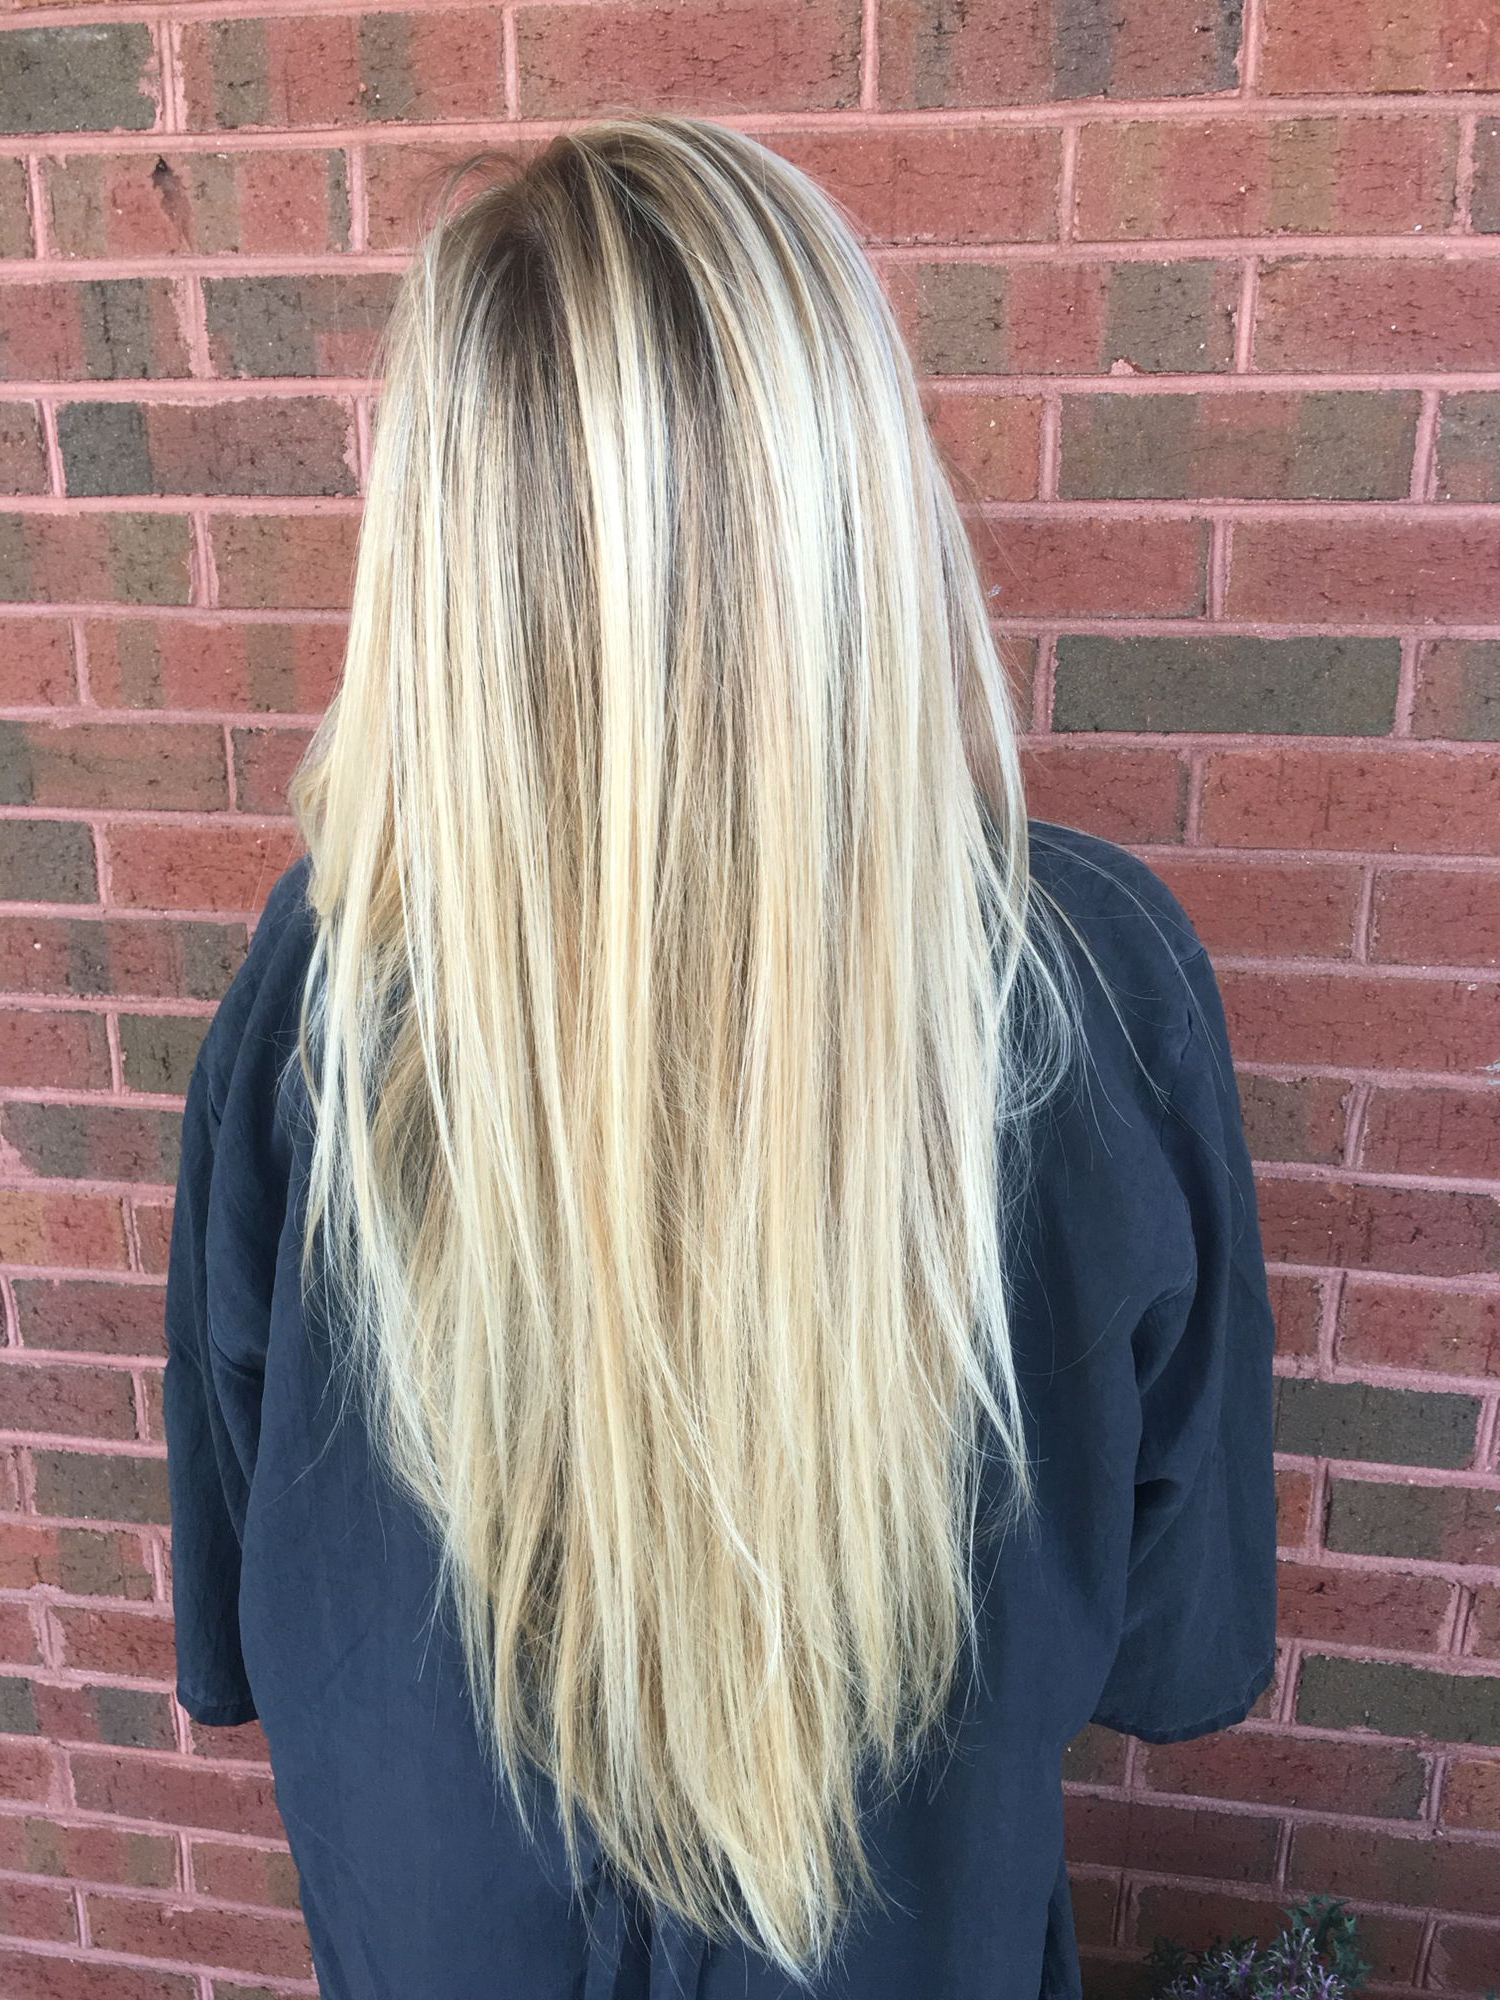 Cool Tone Blonde Balayage With Natural Lowlight   Hair For Long Pixie Hairstyles With Dramatic Blonde Balayage (View 13 of 20)